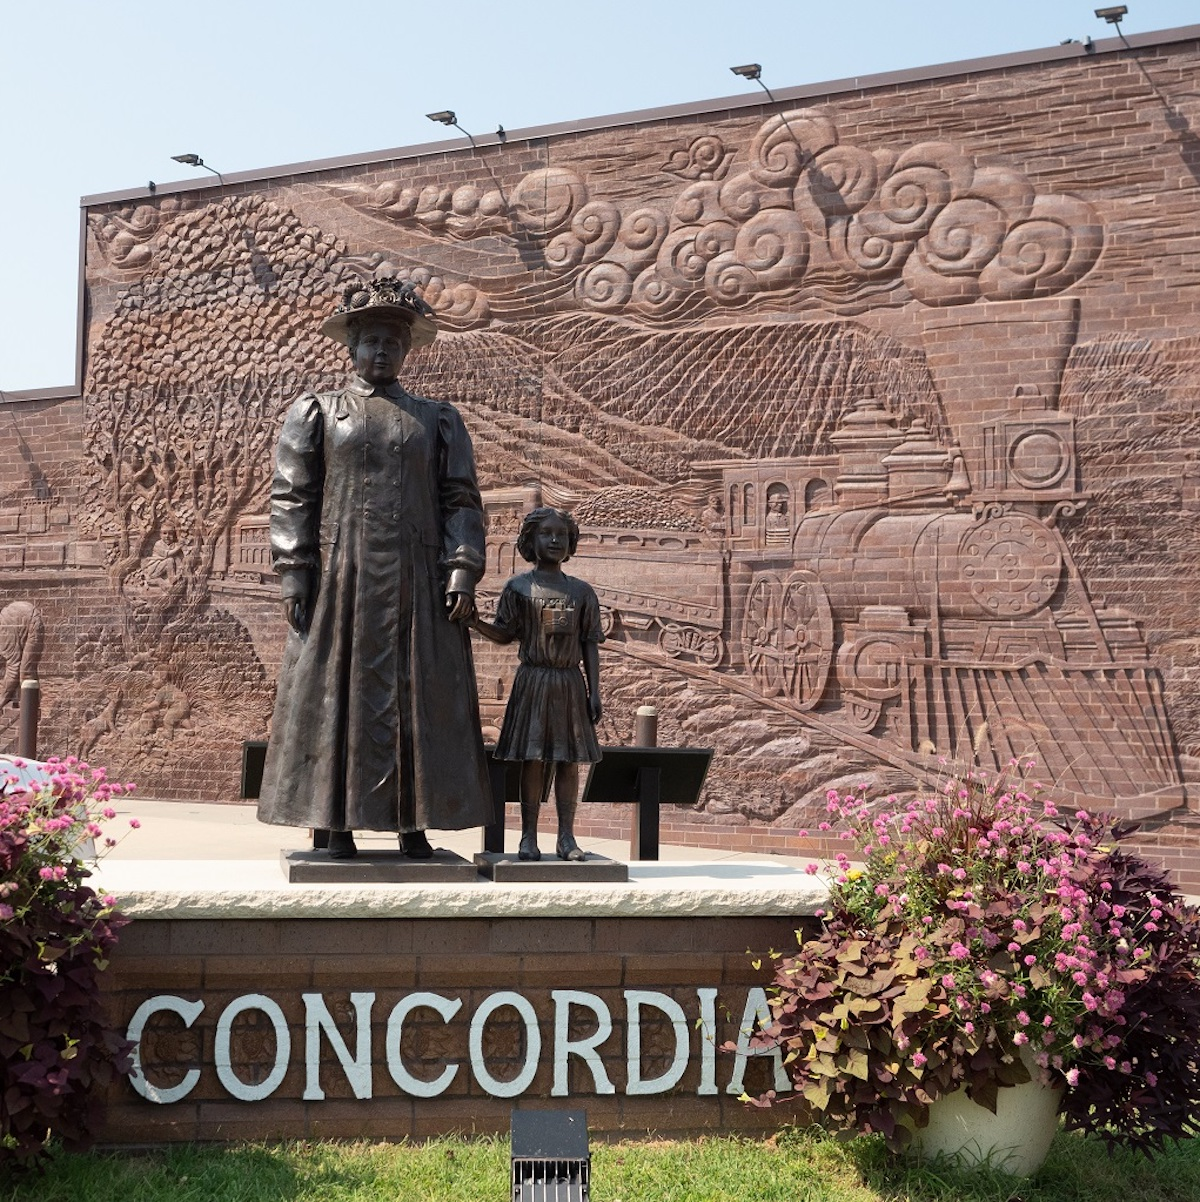 Statue Of Anna Laura Hill And Orphan Train Rider, Concordia.